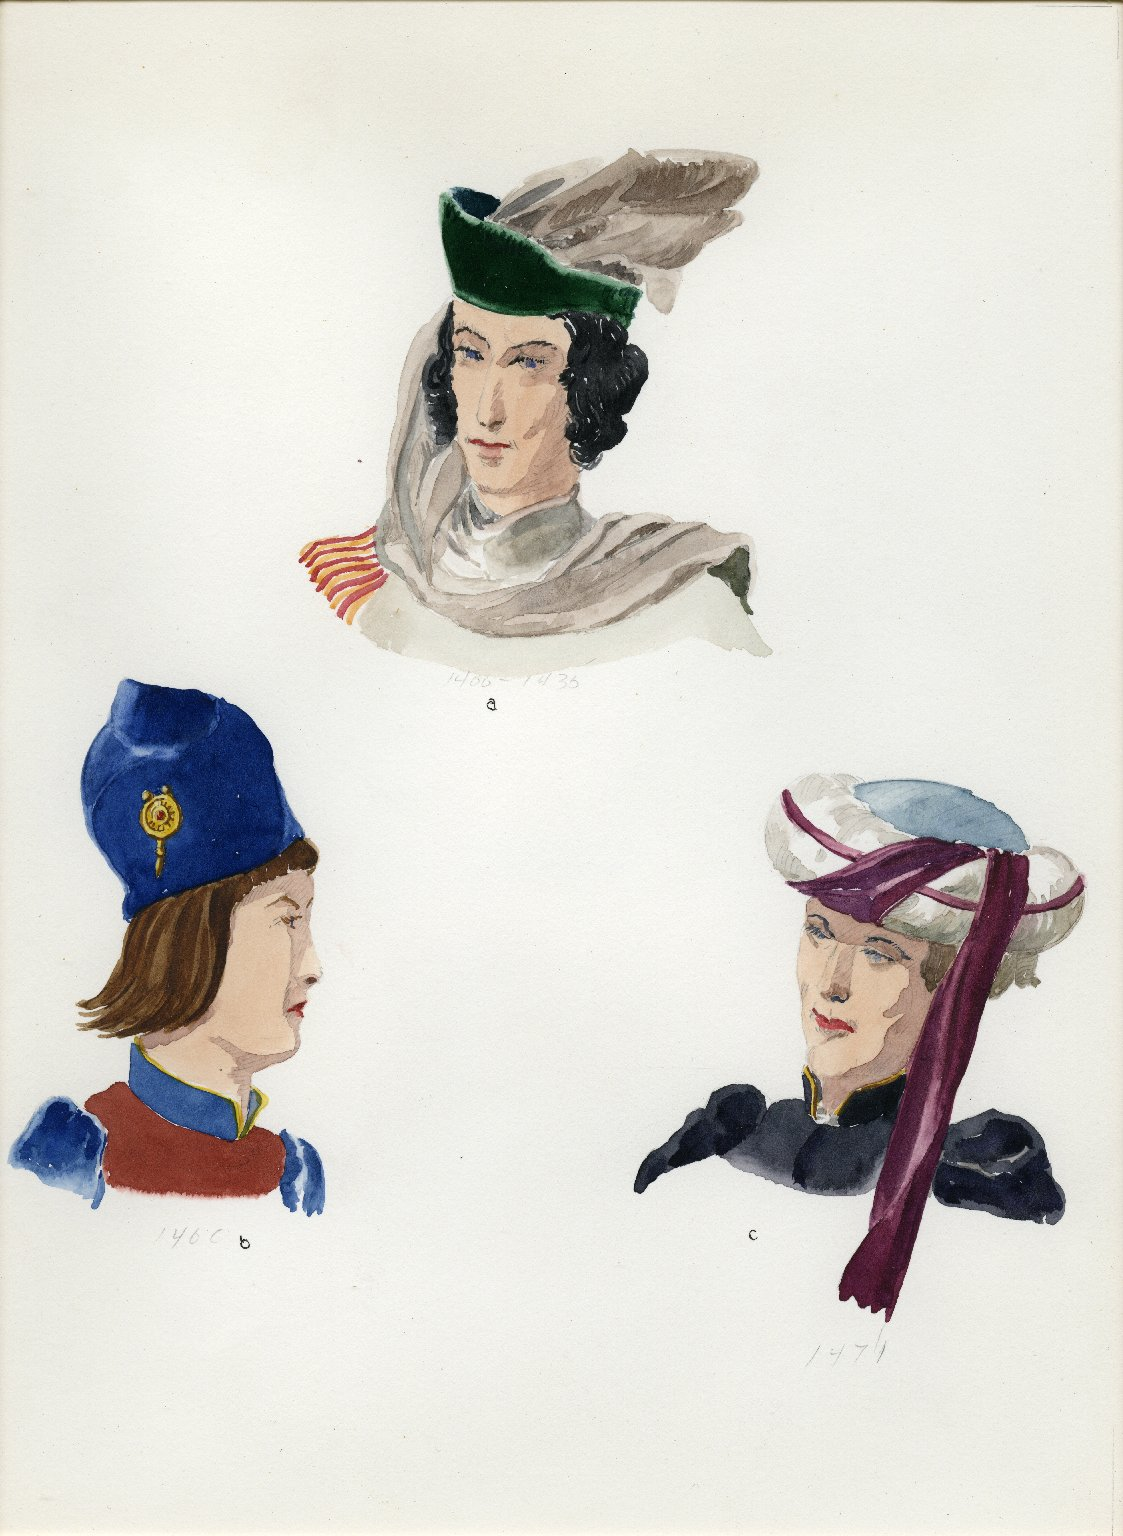 Plate XI: Late Middle Ages English hats